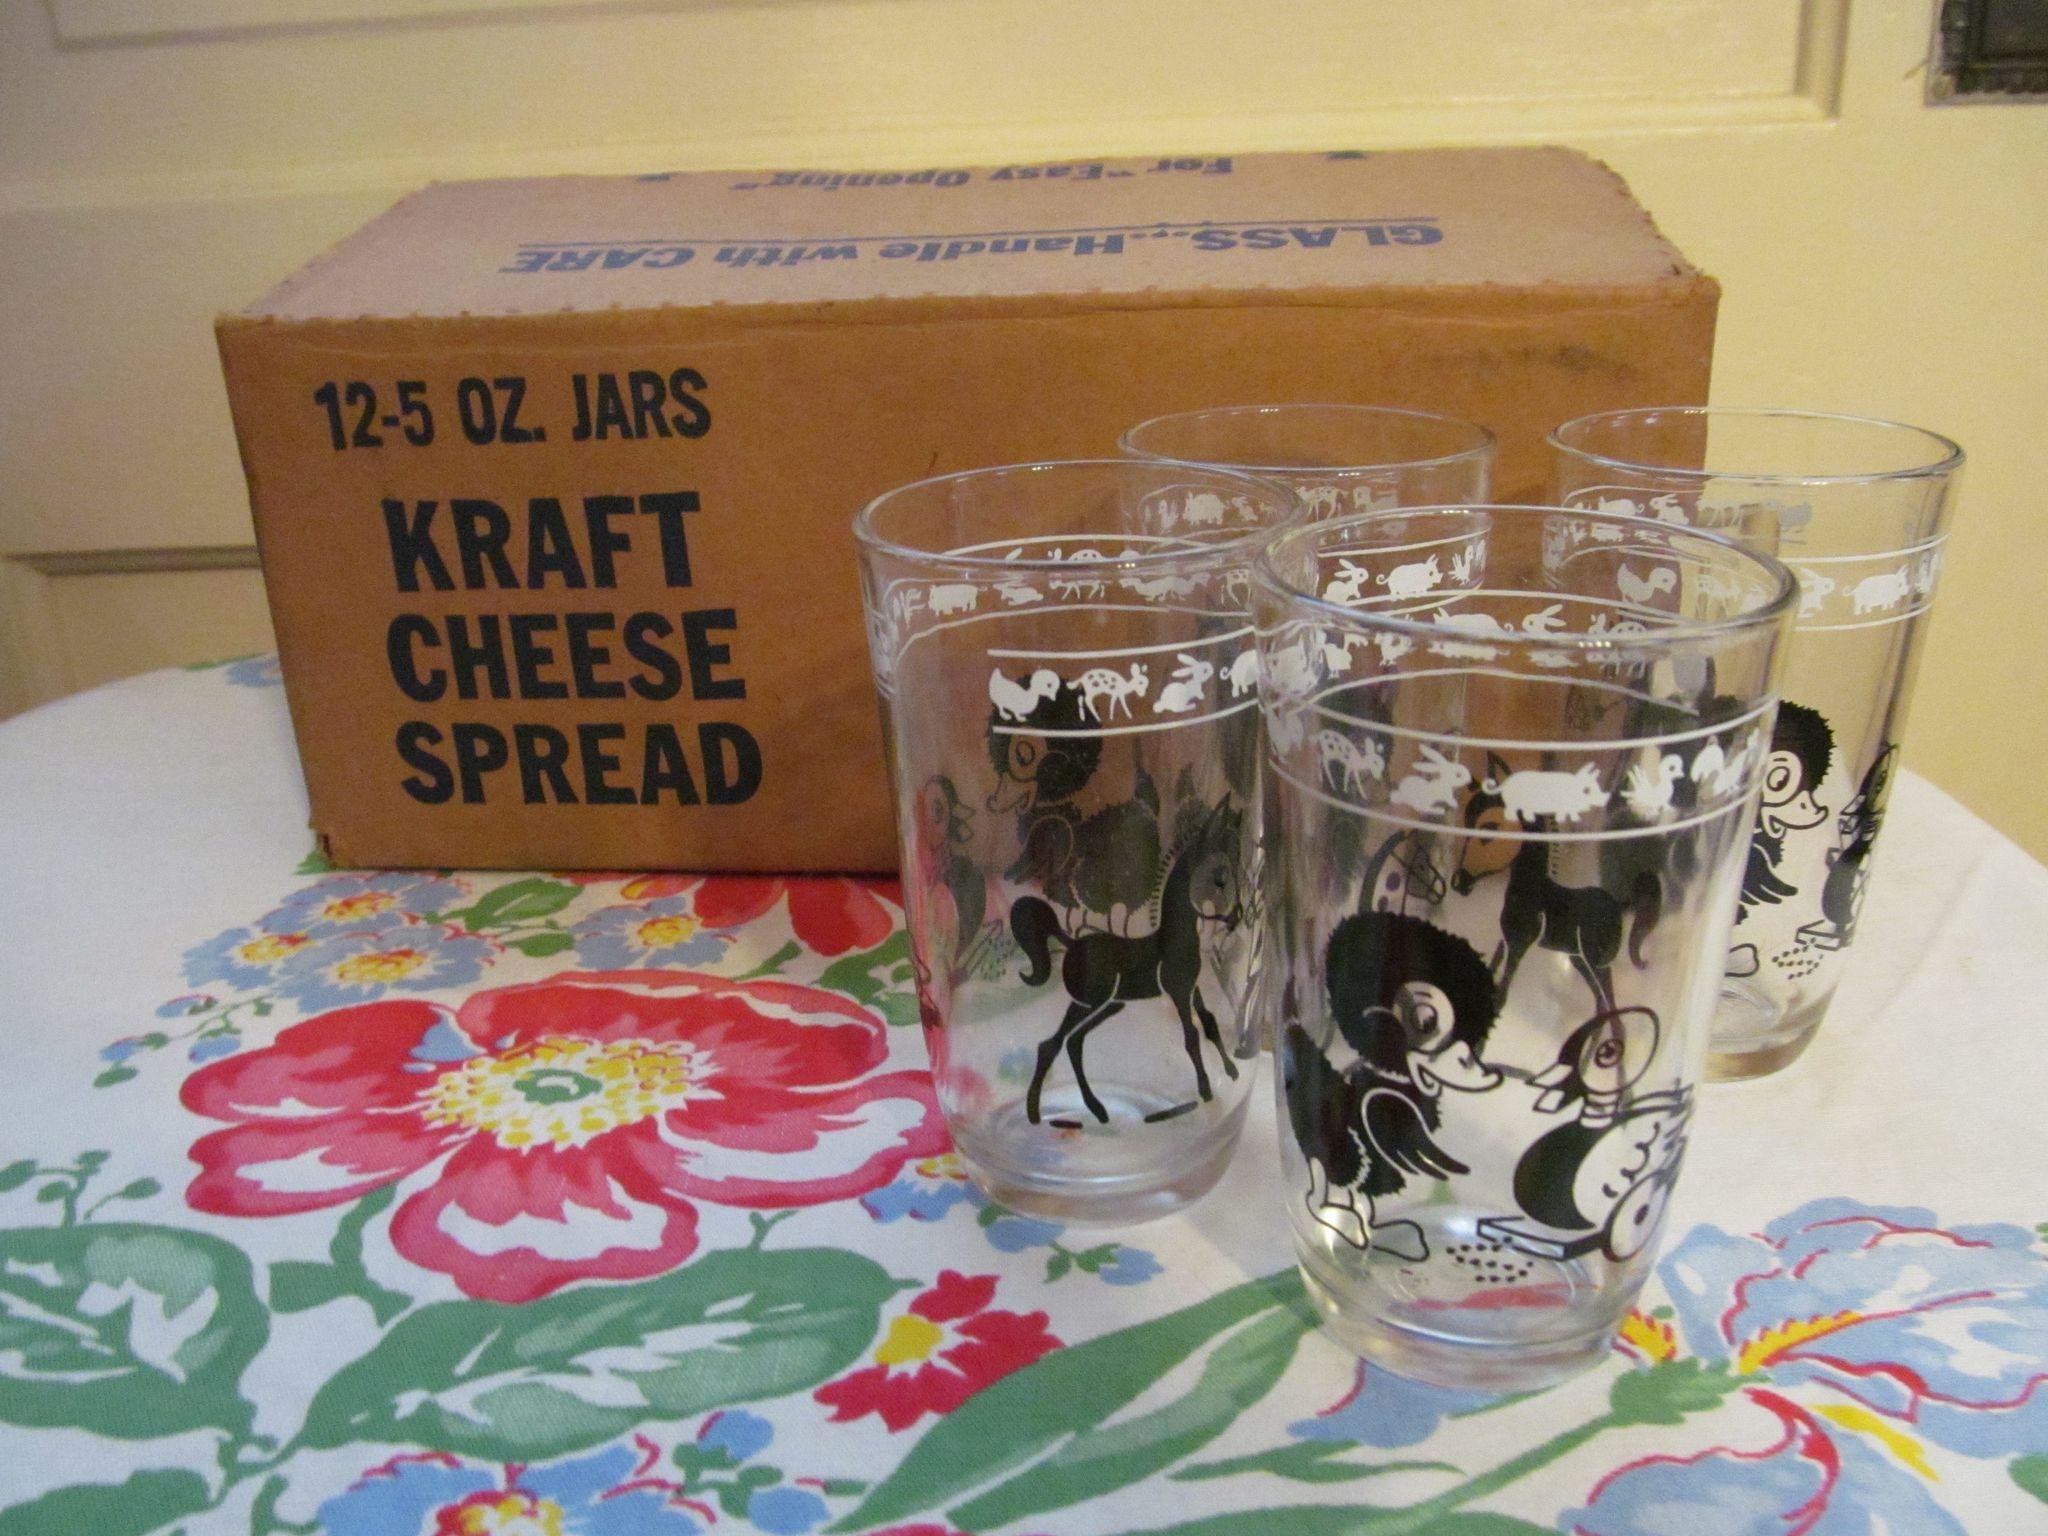 Kraft Swanky Swigs Kiddy Cups with Original Box